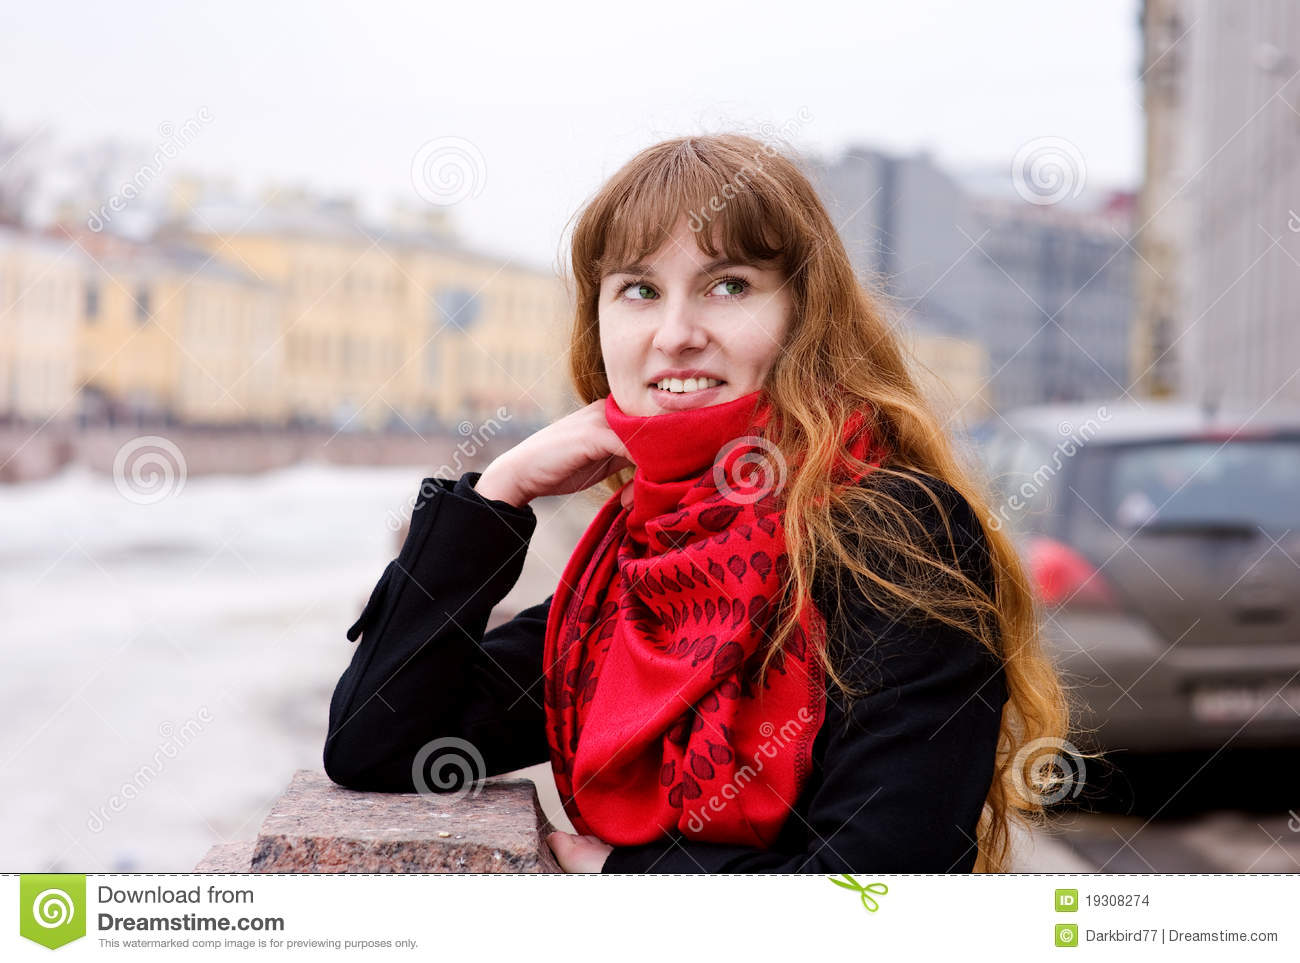 essays on the red scarf girl